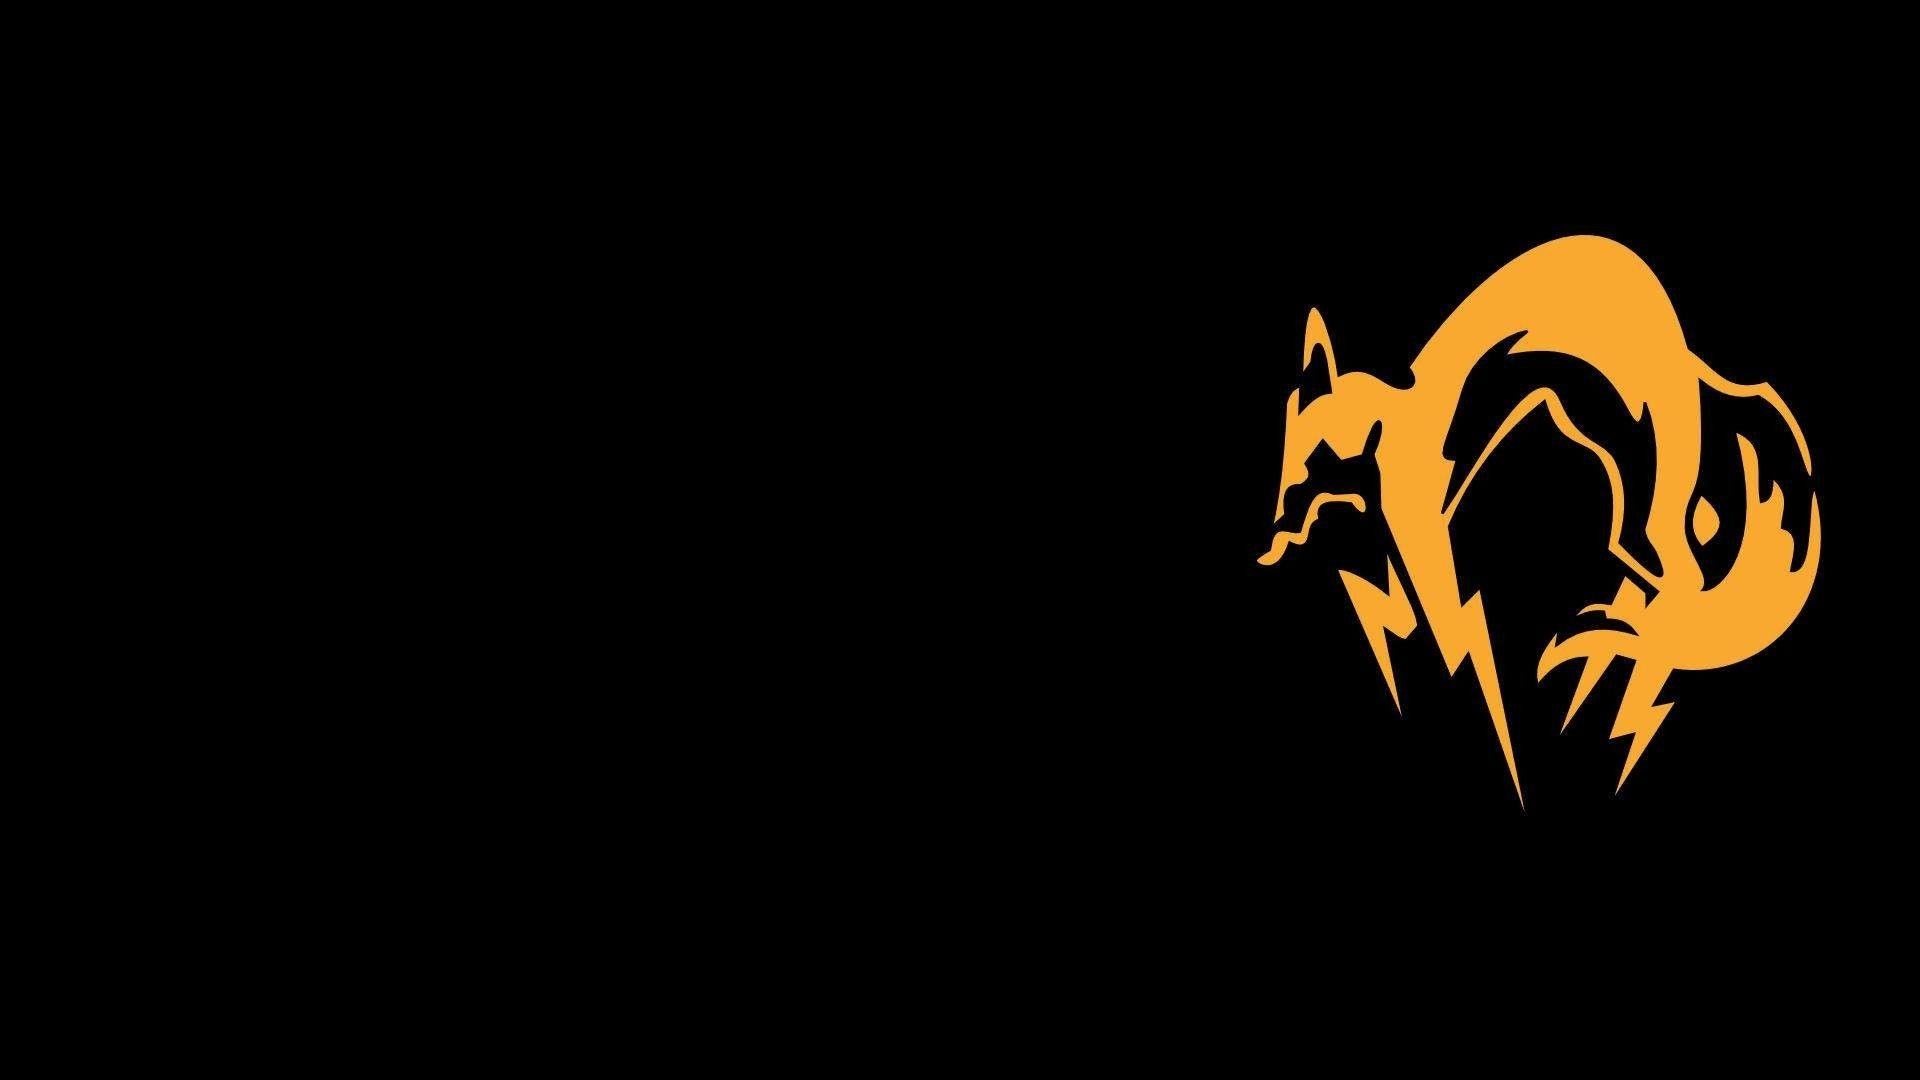 10 Latest Foxhound Logo Wallpaper Hd Full Hd 1920 1080 For Pc Desktop Cartoon Wallpaper Hd Logo Wallpaper Hd The Fox And The Hound